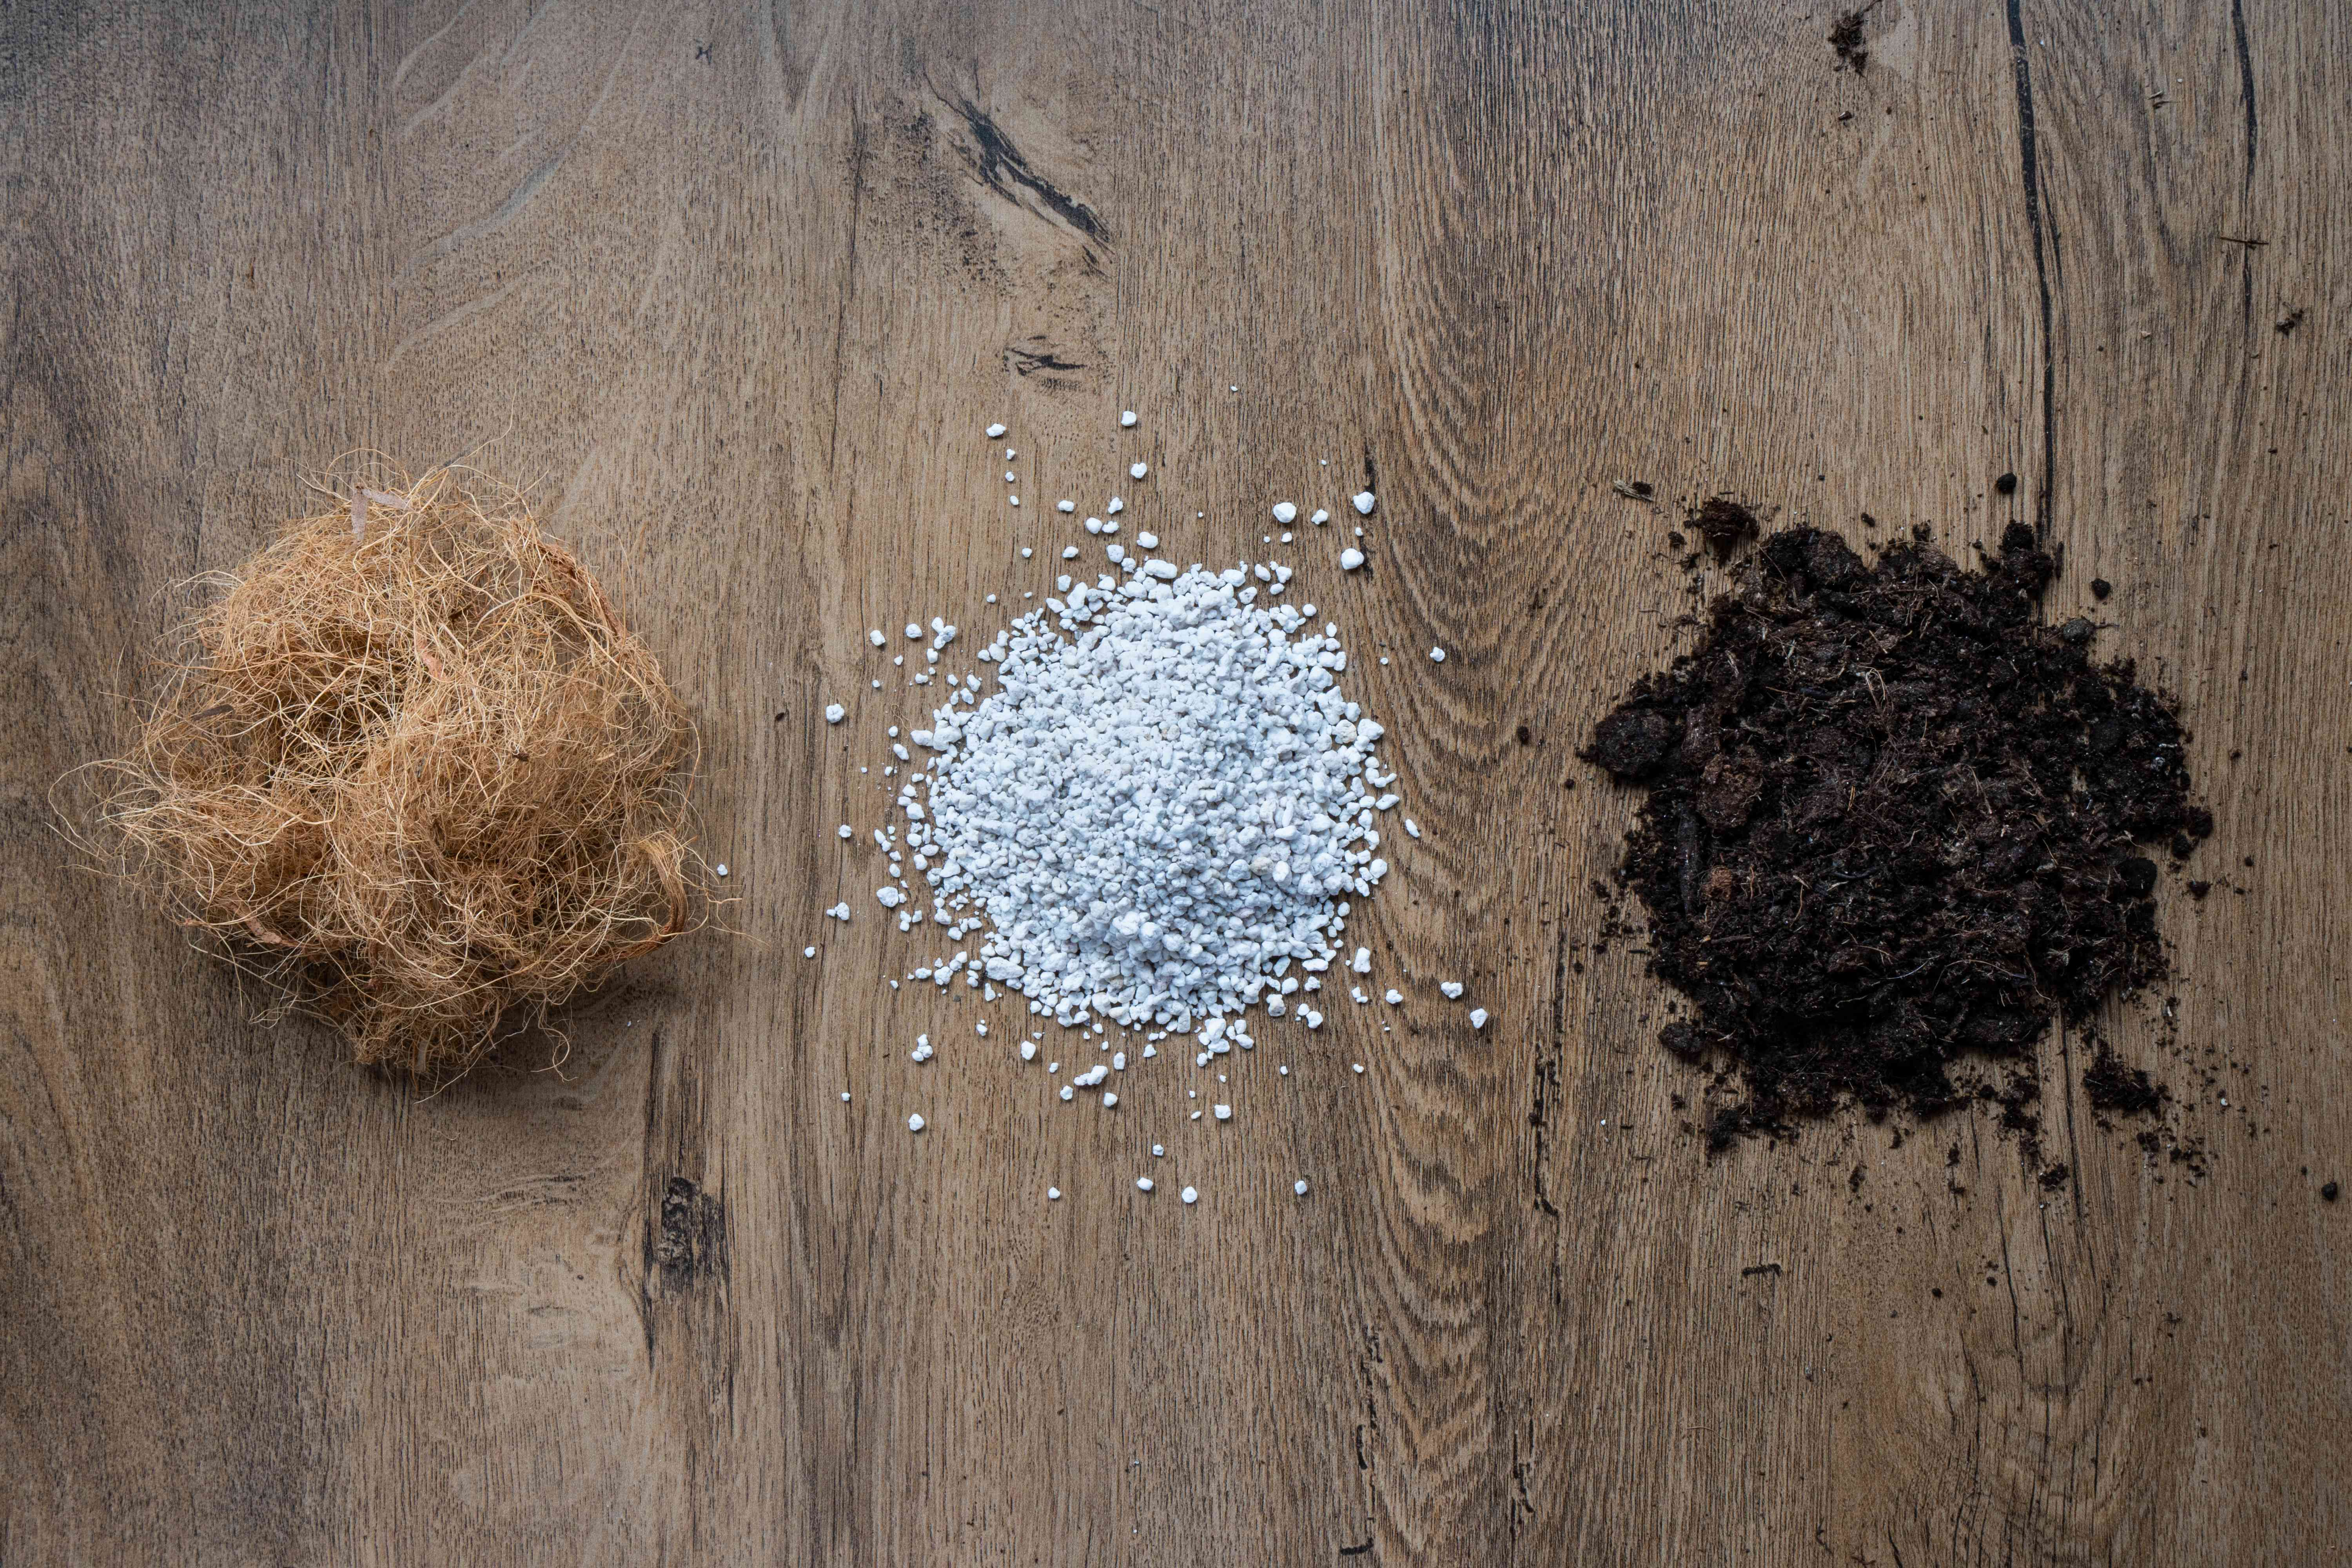 coir, vermicompost and perlite mixtures in three small piles on wood floor